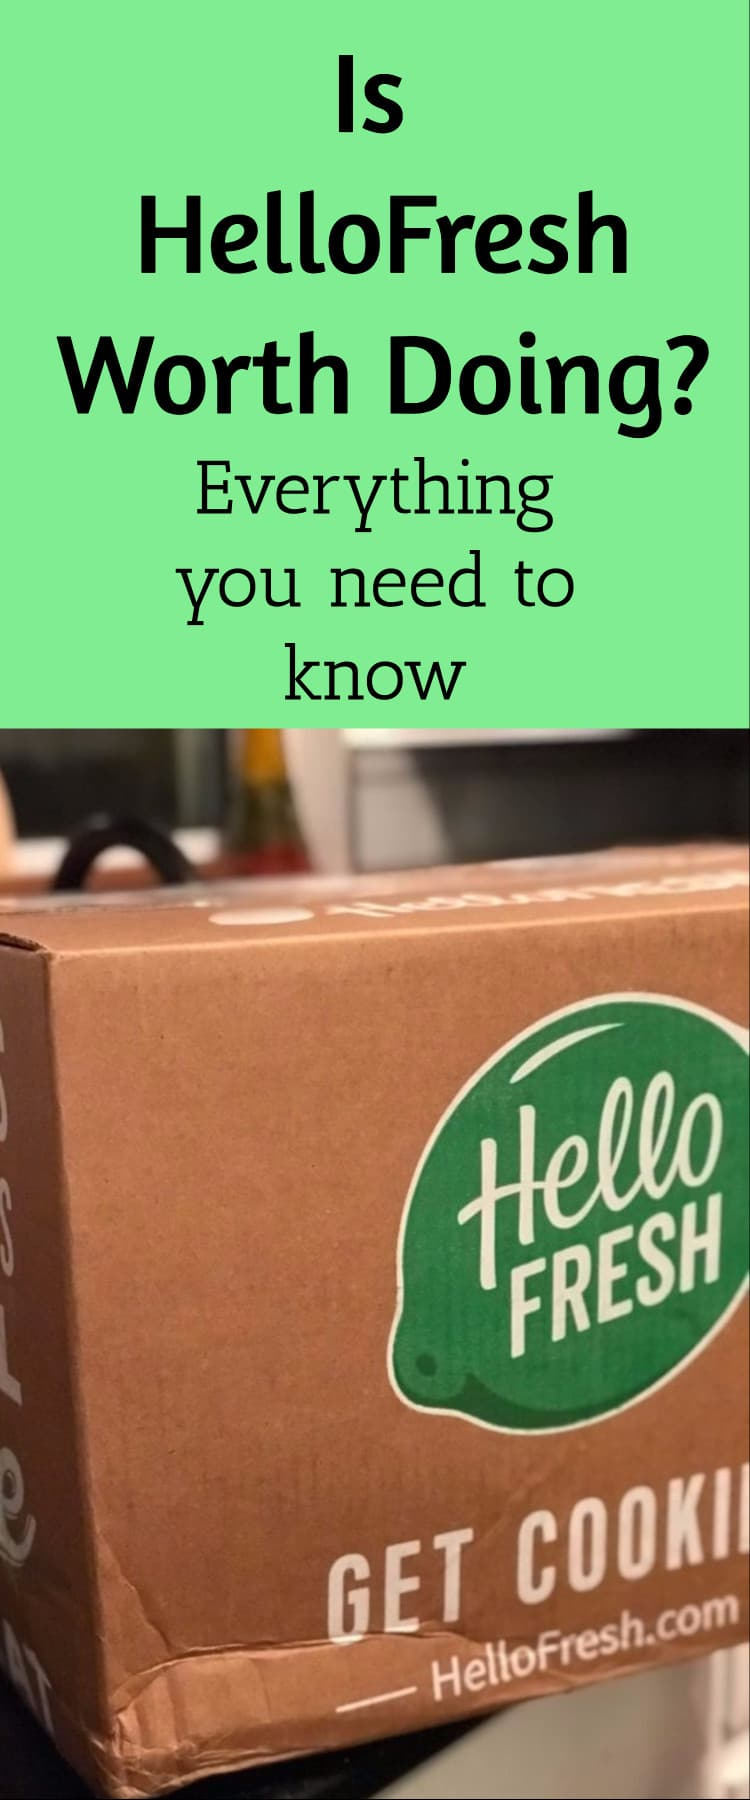 HelloFresh Review and Discount Code